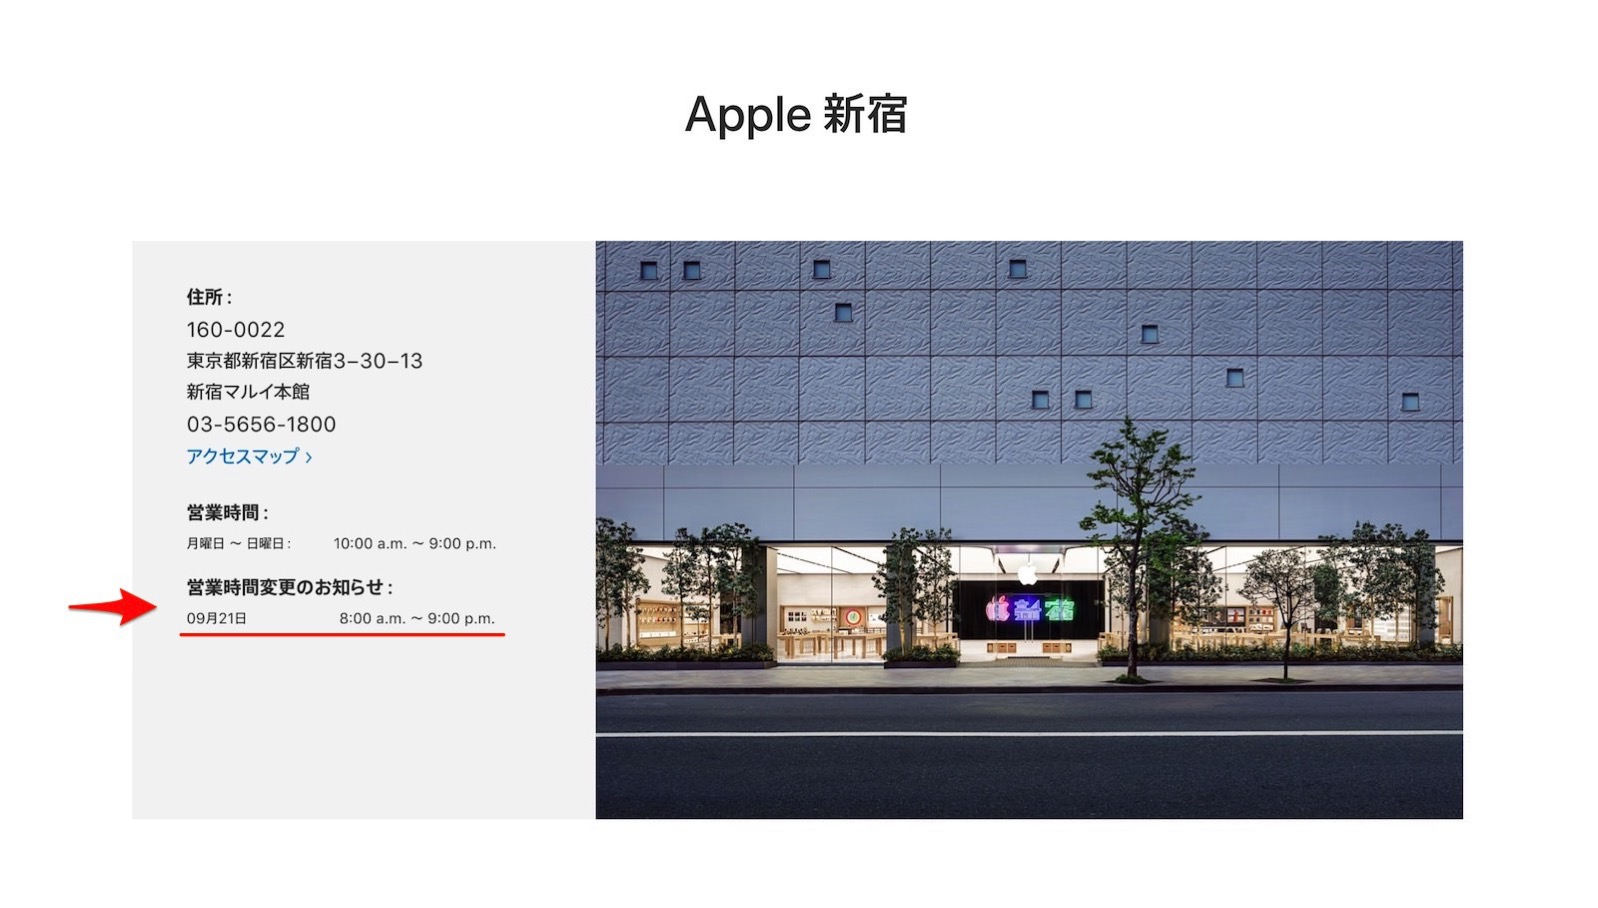 Apple Store opening sep 21